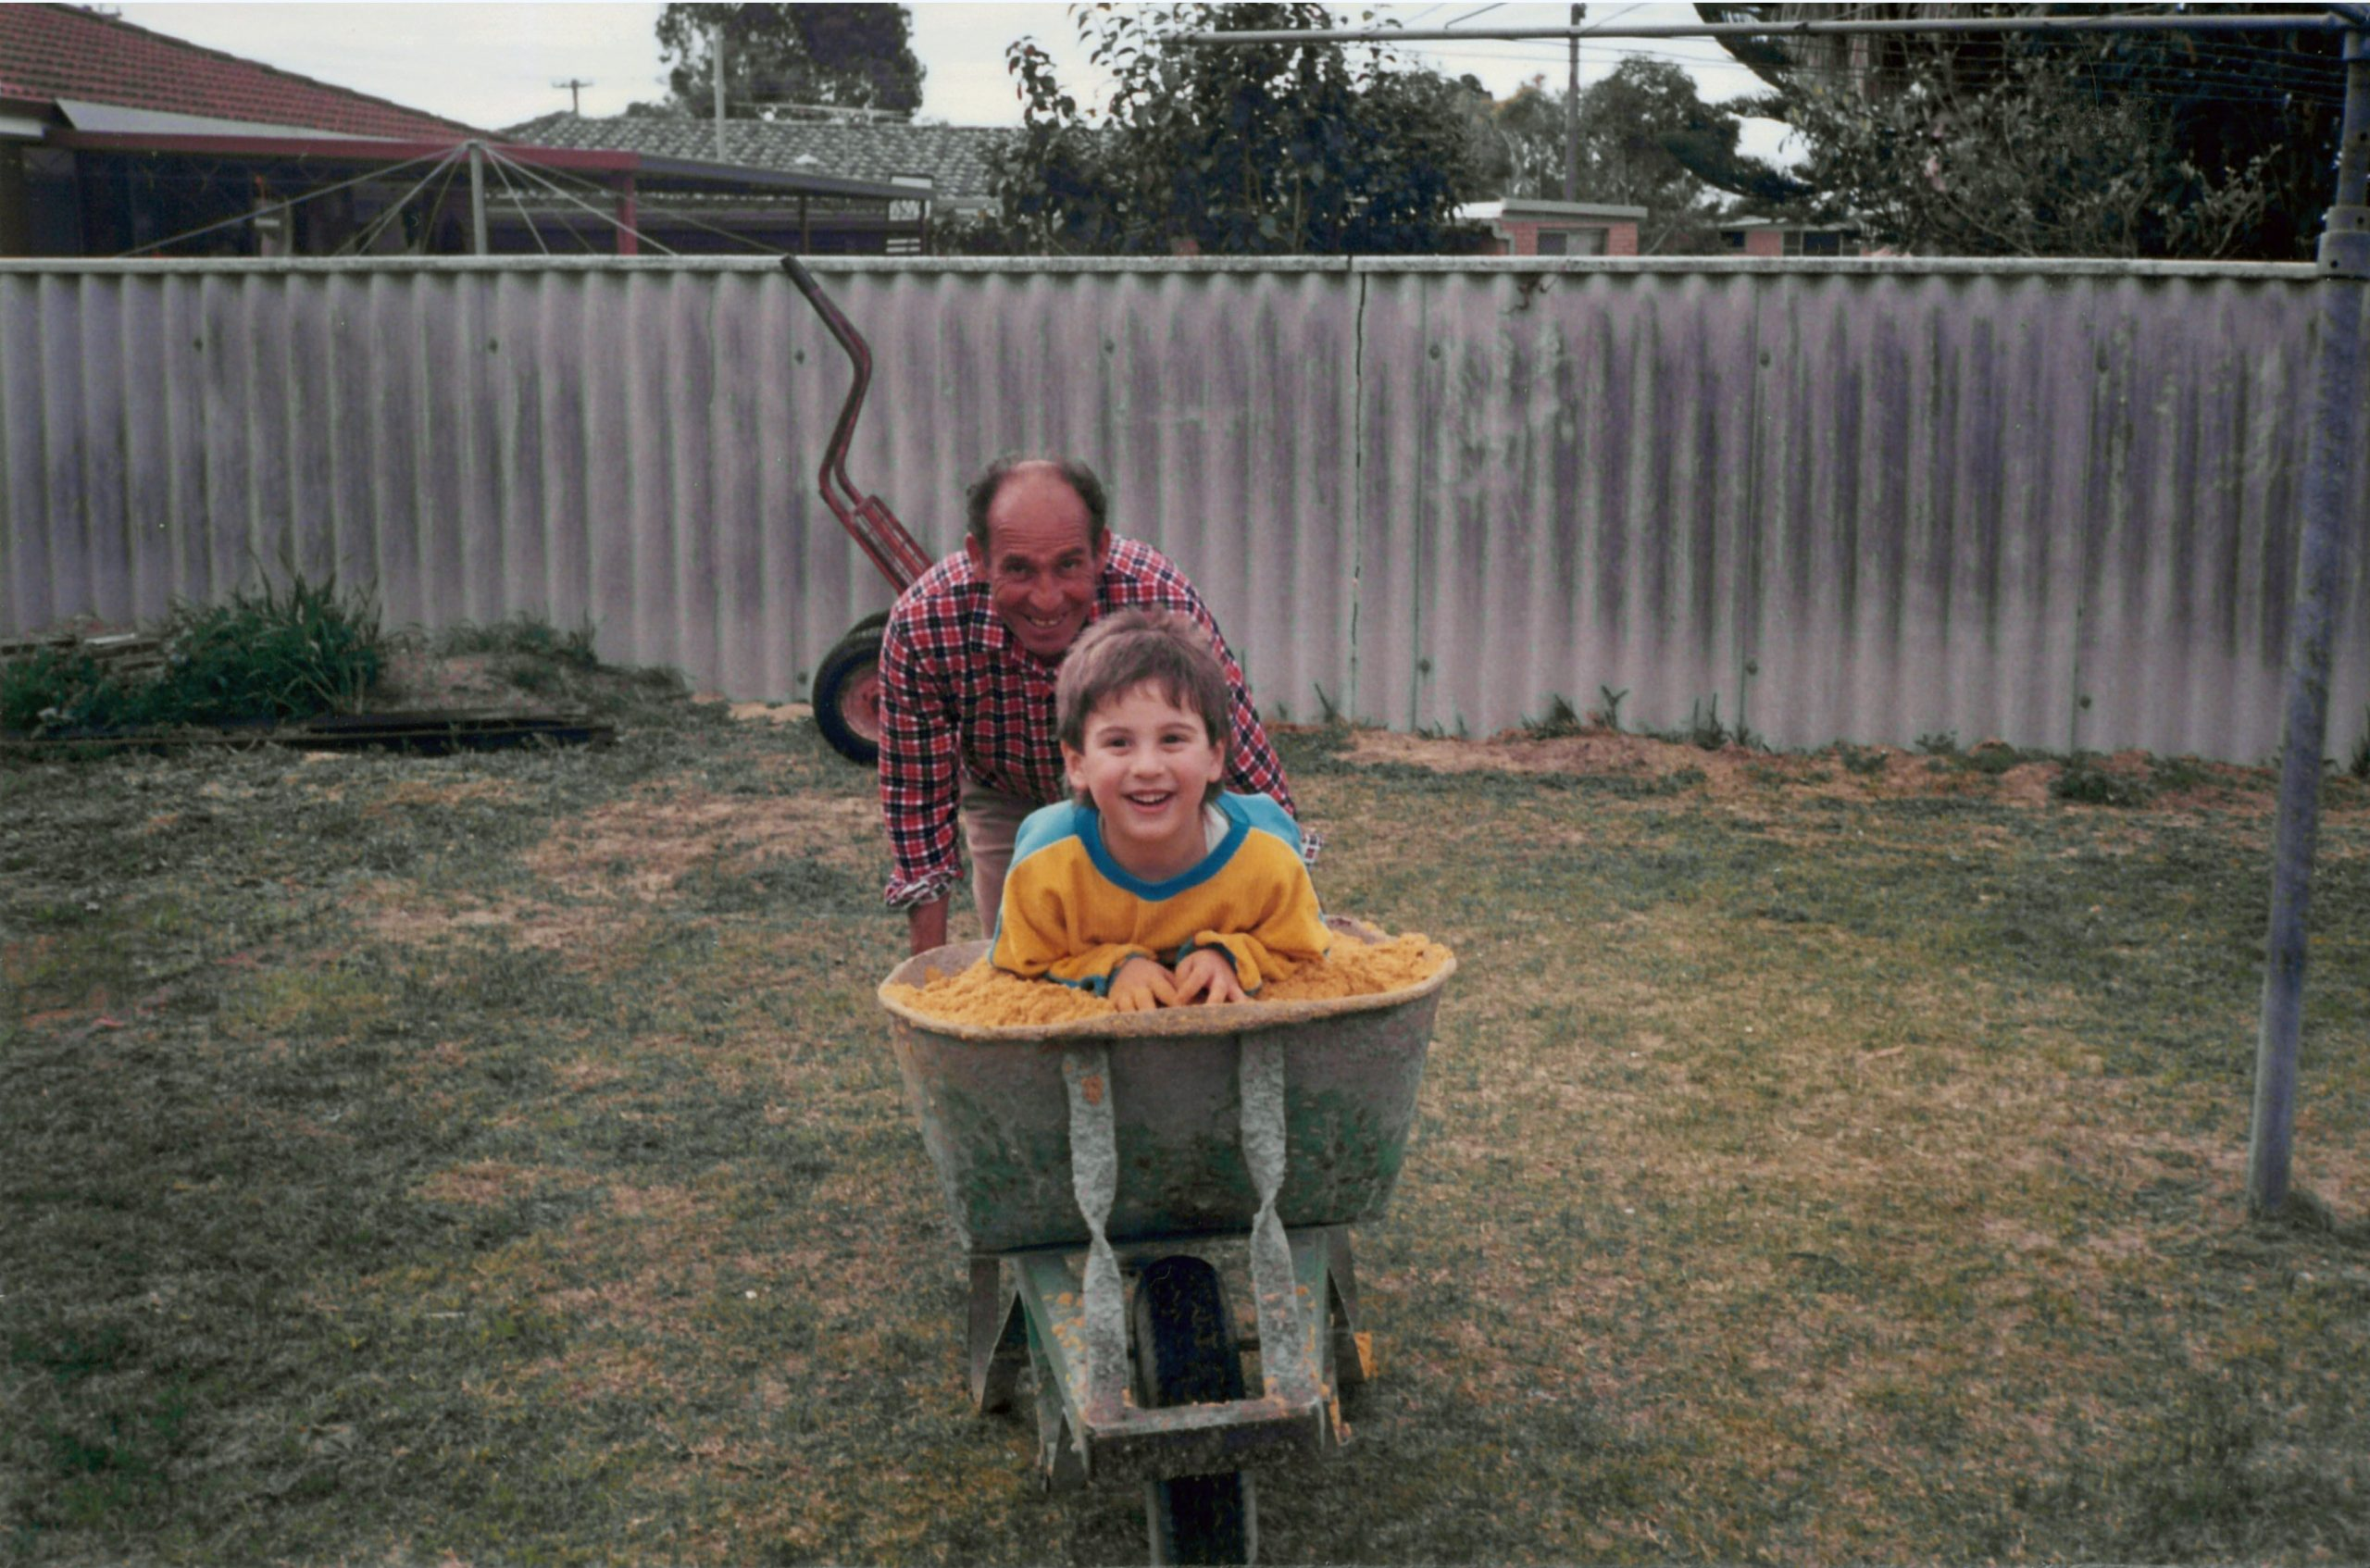 Anthony in wheelbarrow